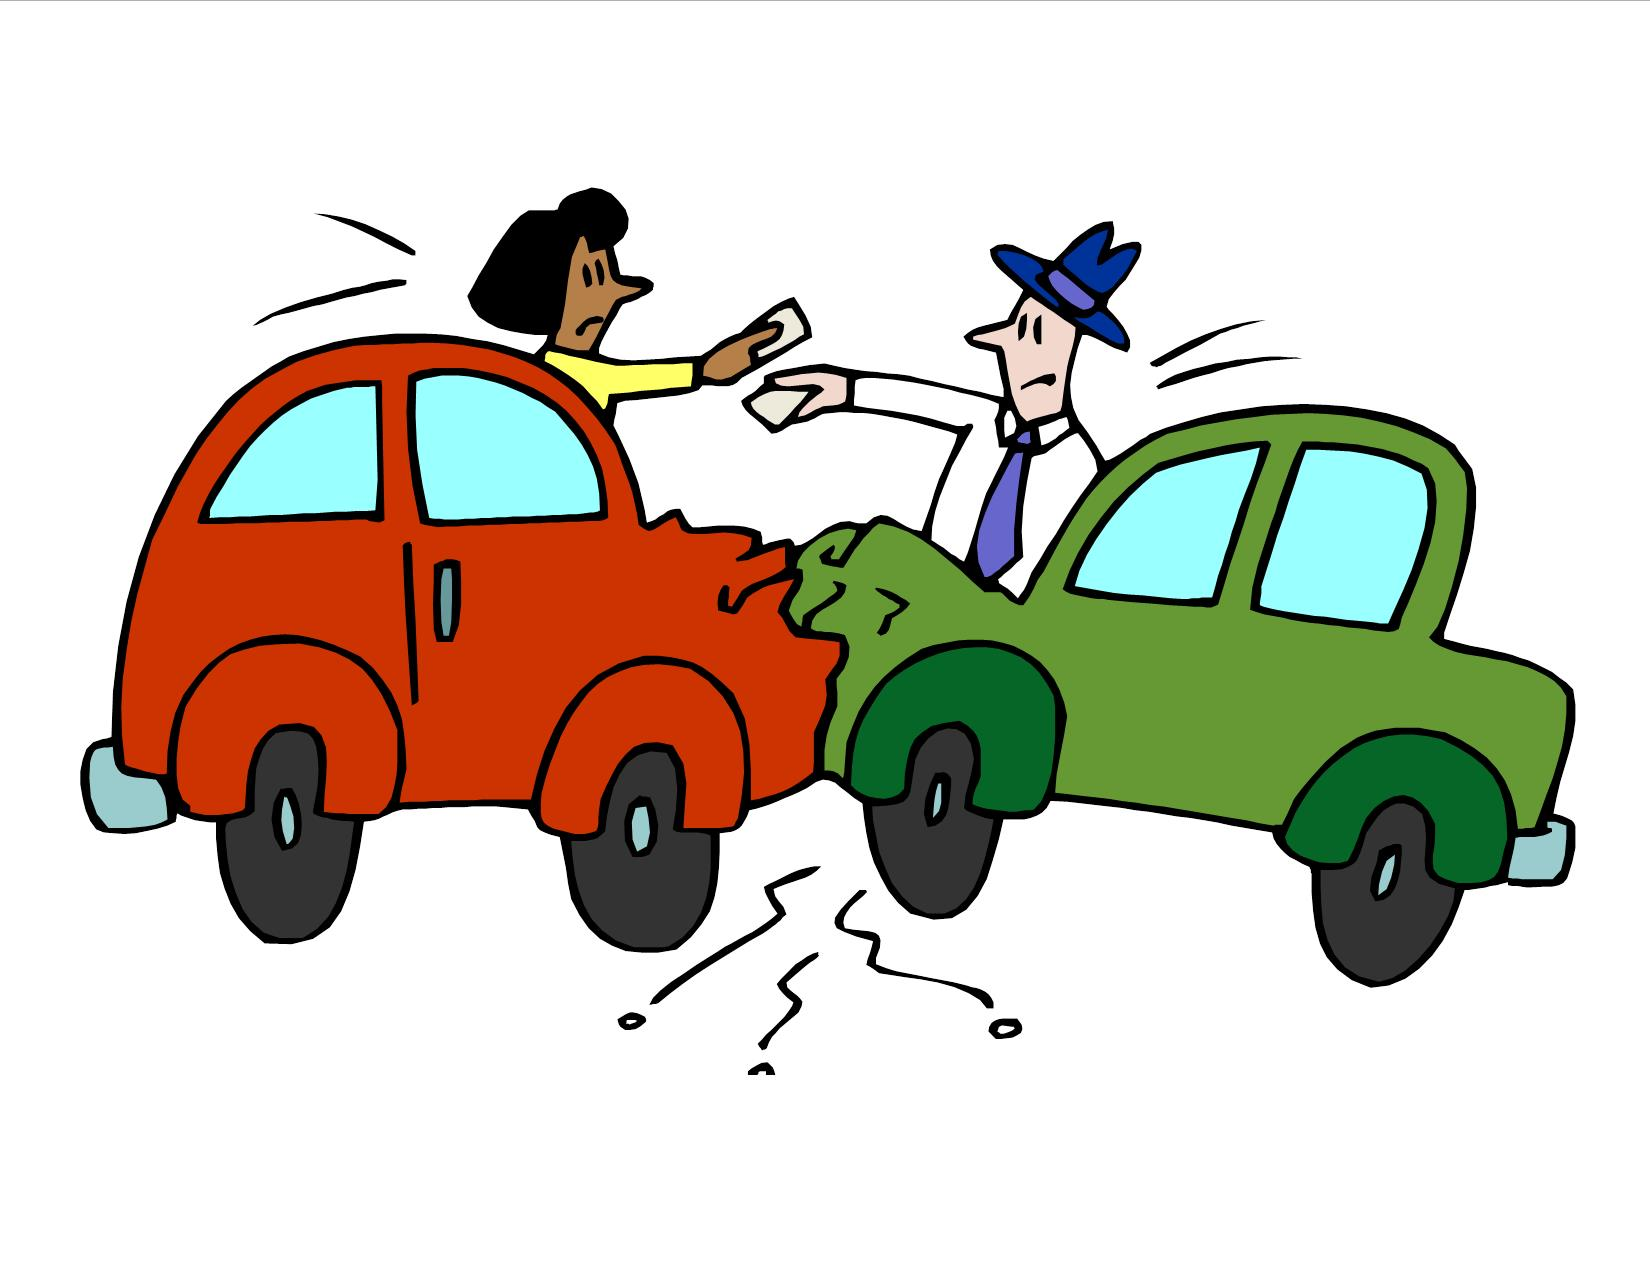 Accident cliparts. Accident cliparts. cl-Accident cliparts. Accident cliparts. clipart car accident clipart-6